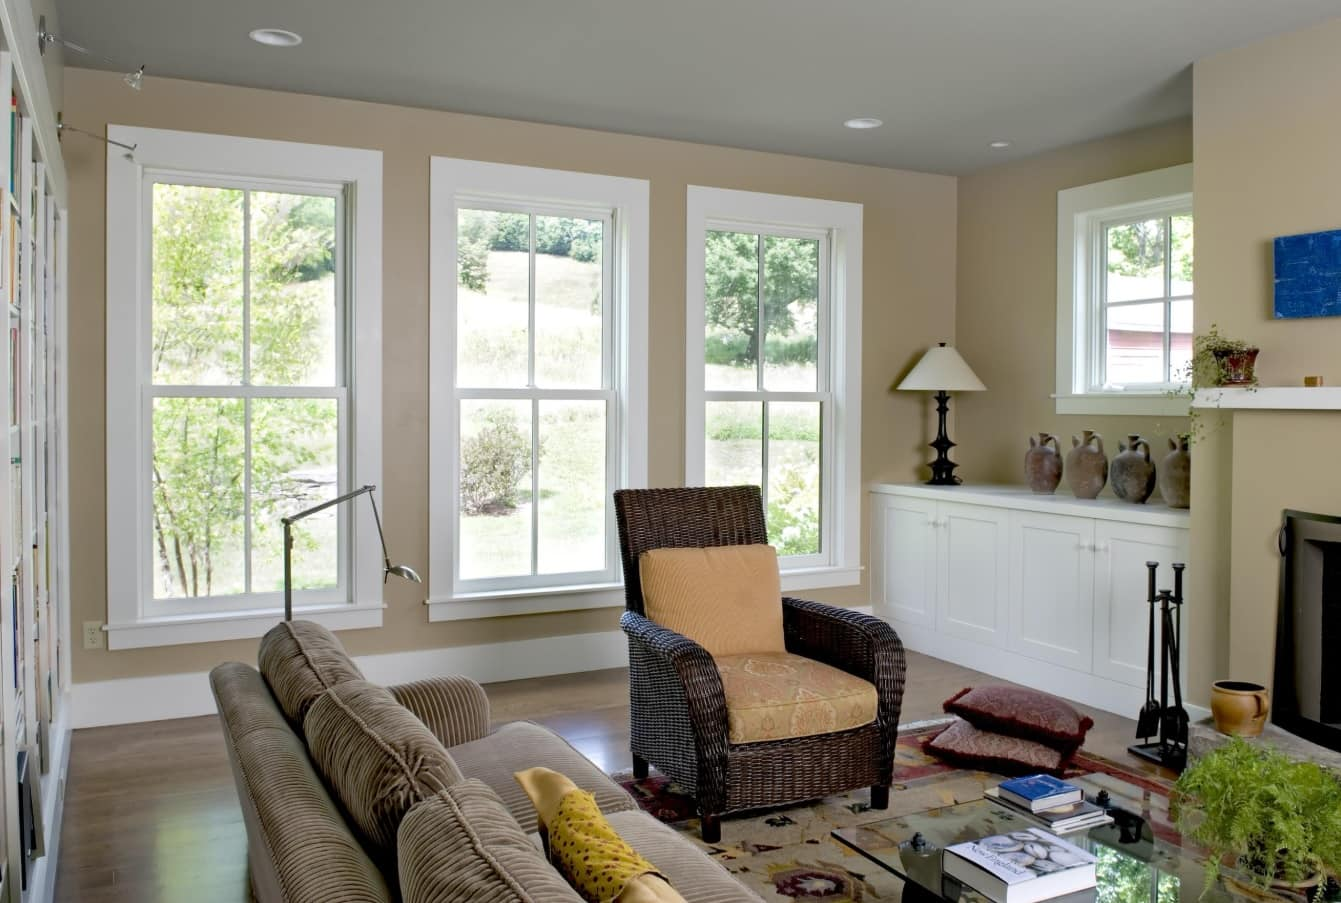 4 Helpful Space Saving Ideas for Any Home. Classic design of the house with large sash windows and casual furniture